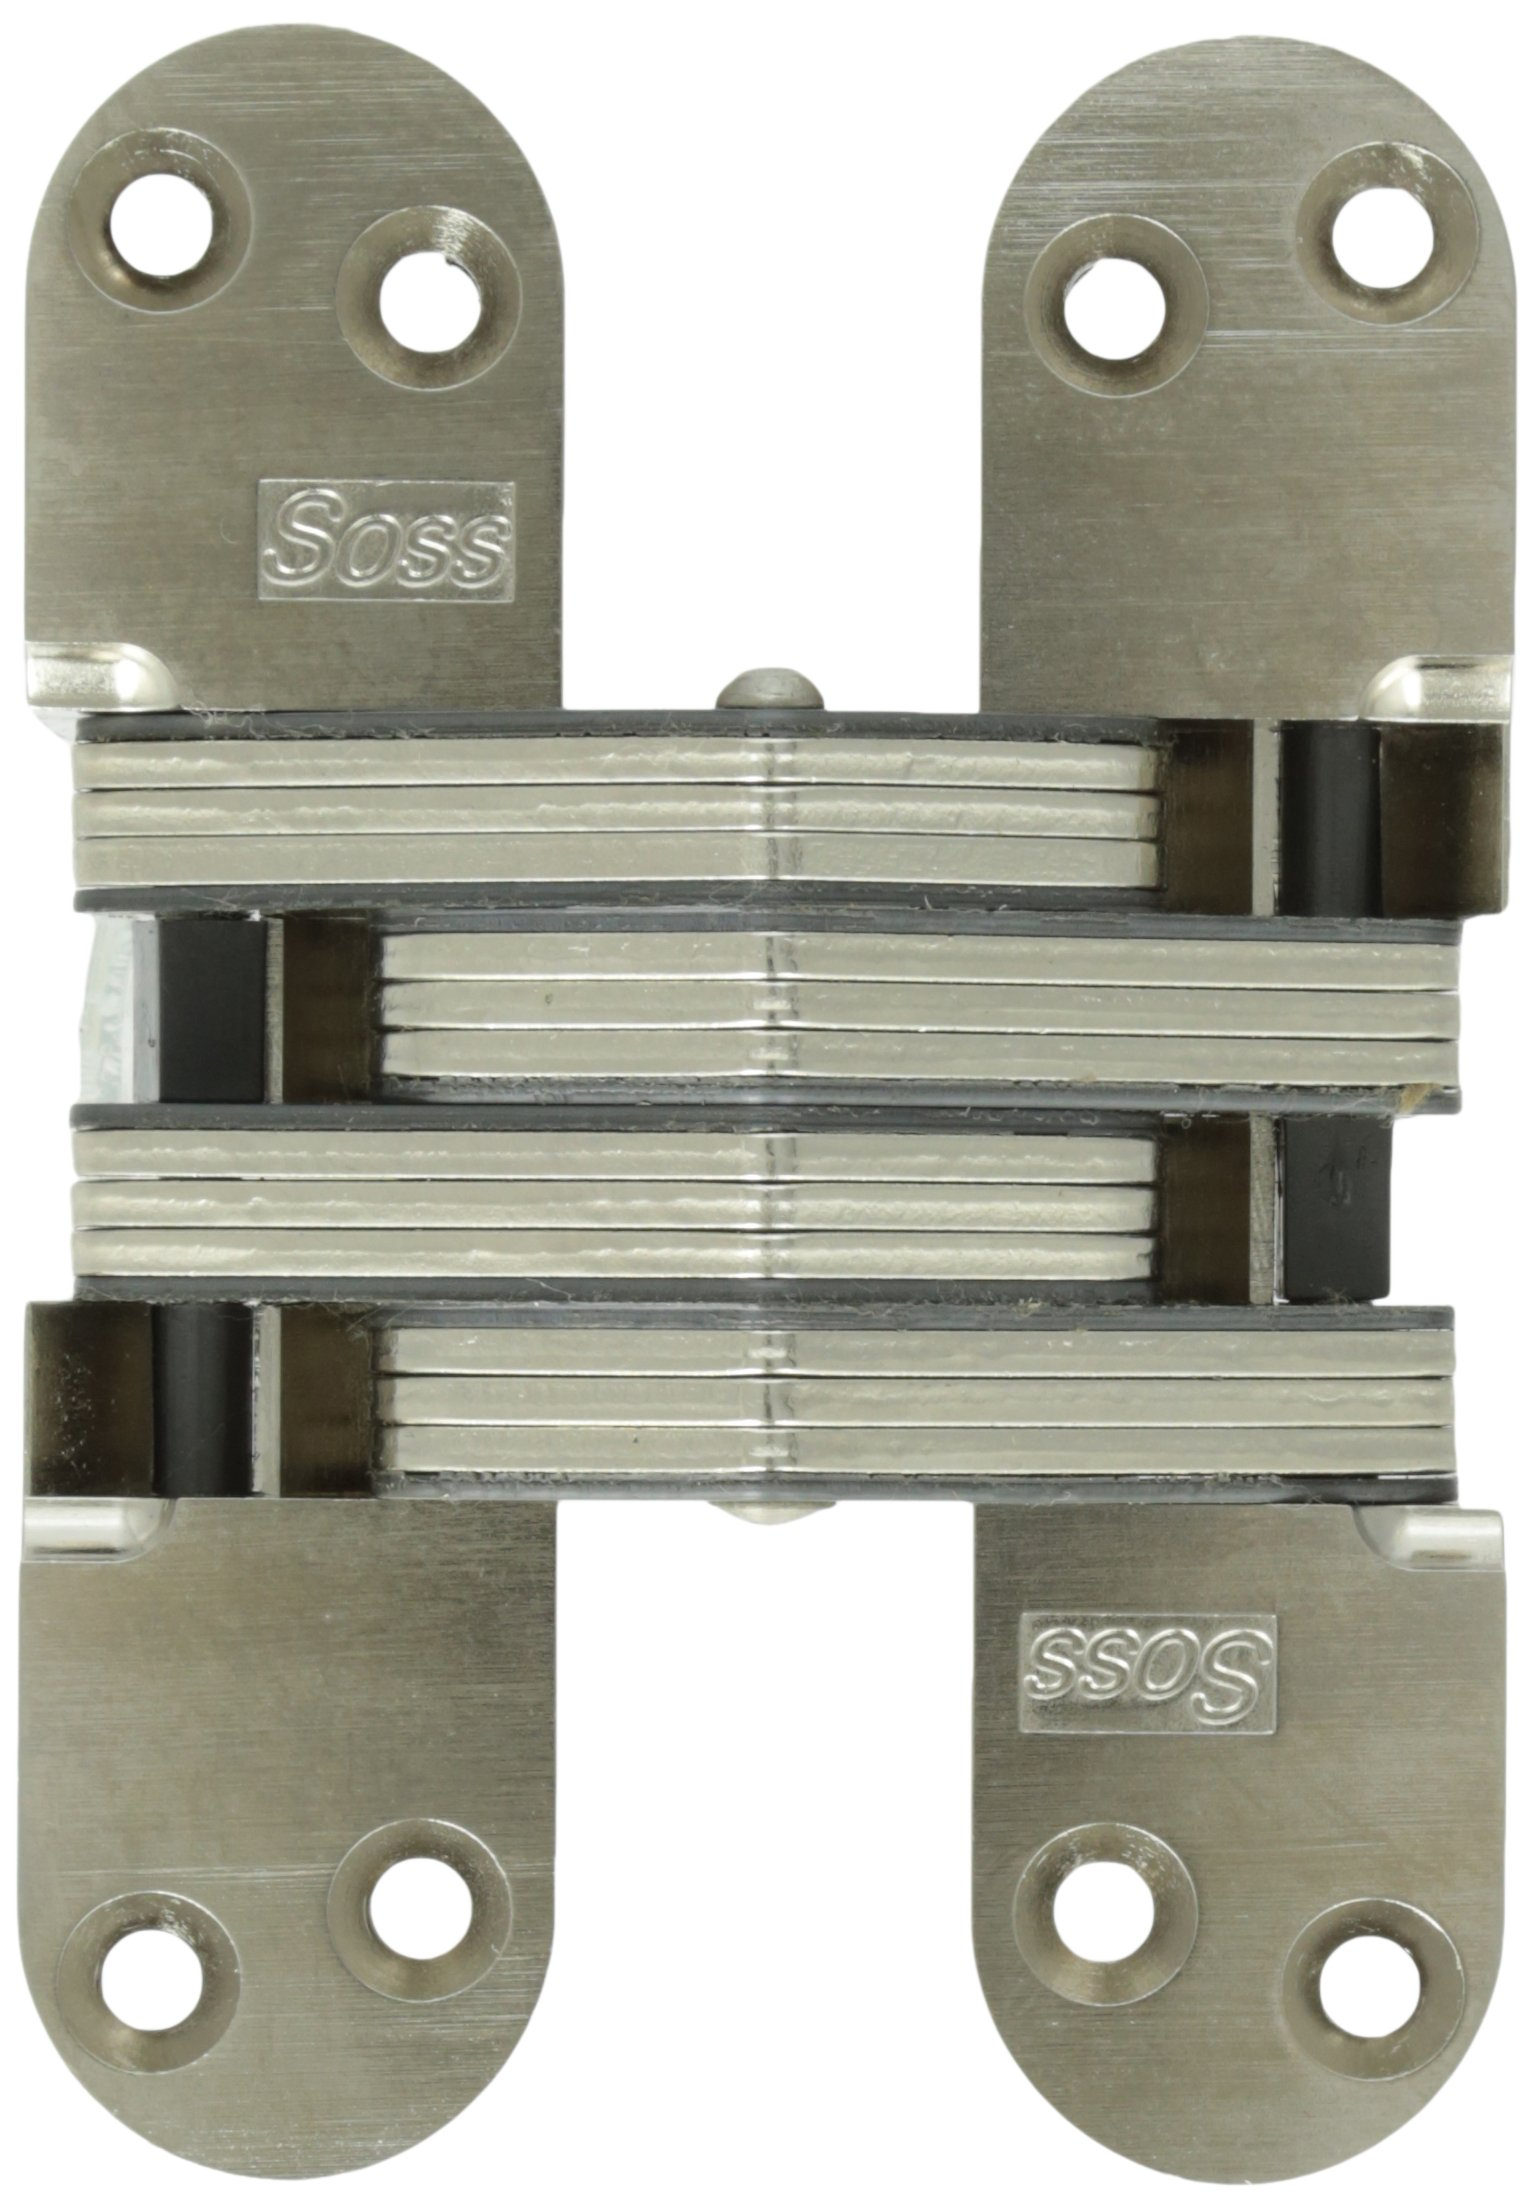 SOSS 220 Zinc Invisible Hinge with Holes for Wood or Metal Applications, Satin Nickel Exterior Finish